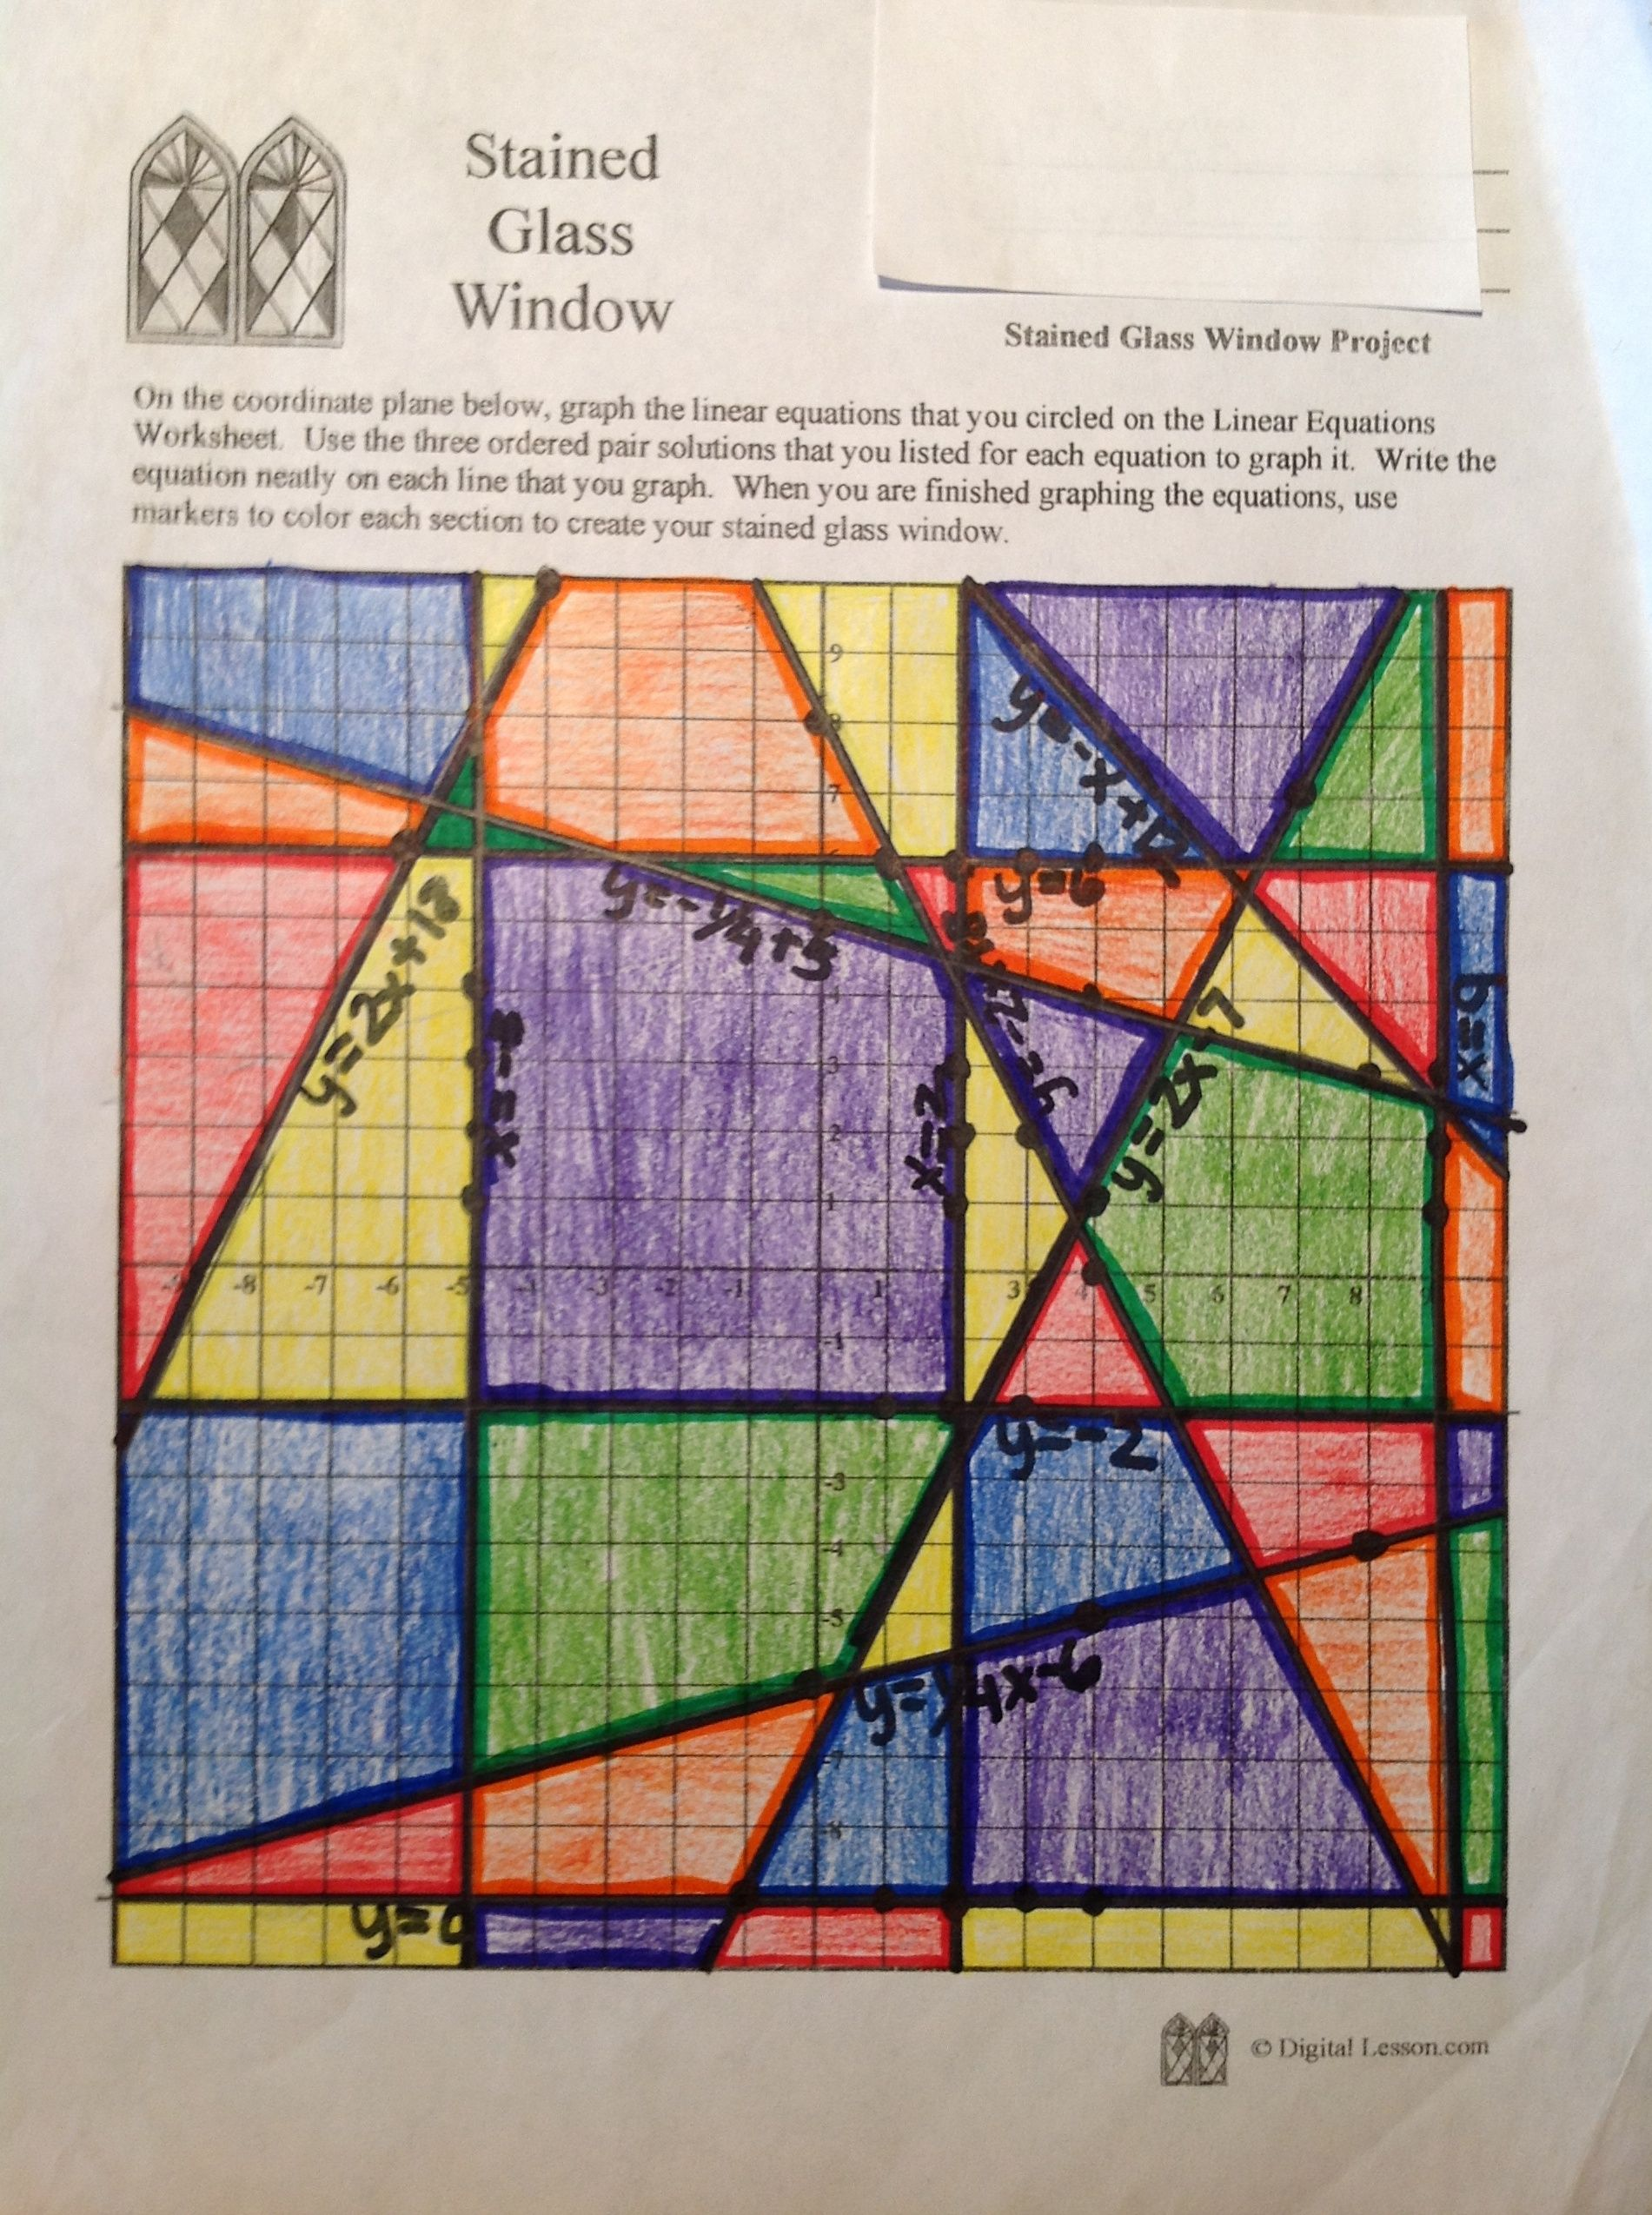 Stainedglasswindow4 areaperimeter love that it isnt all this stained glass math activity requires students to graph linear equations in order to create a colorful display window buycottarizona Gallery